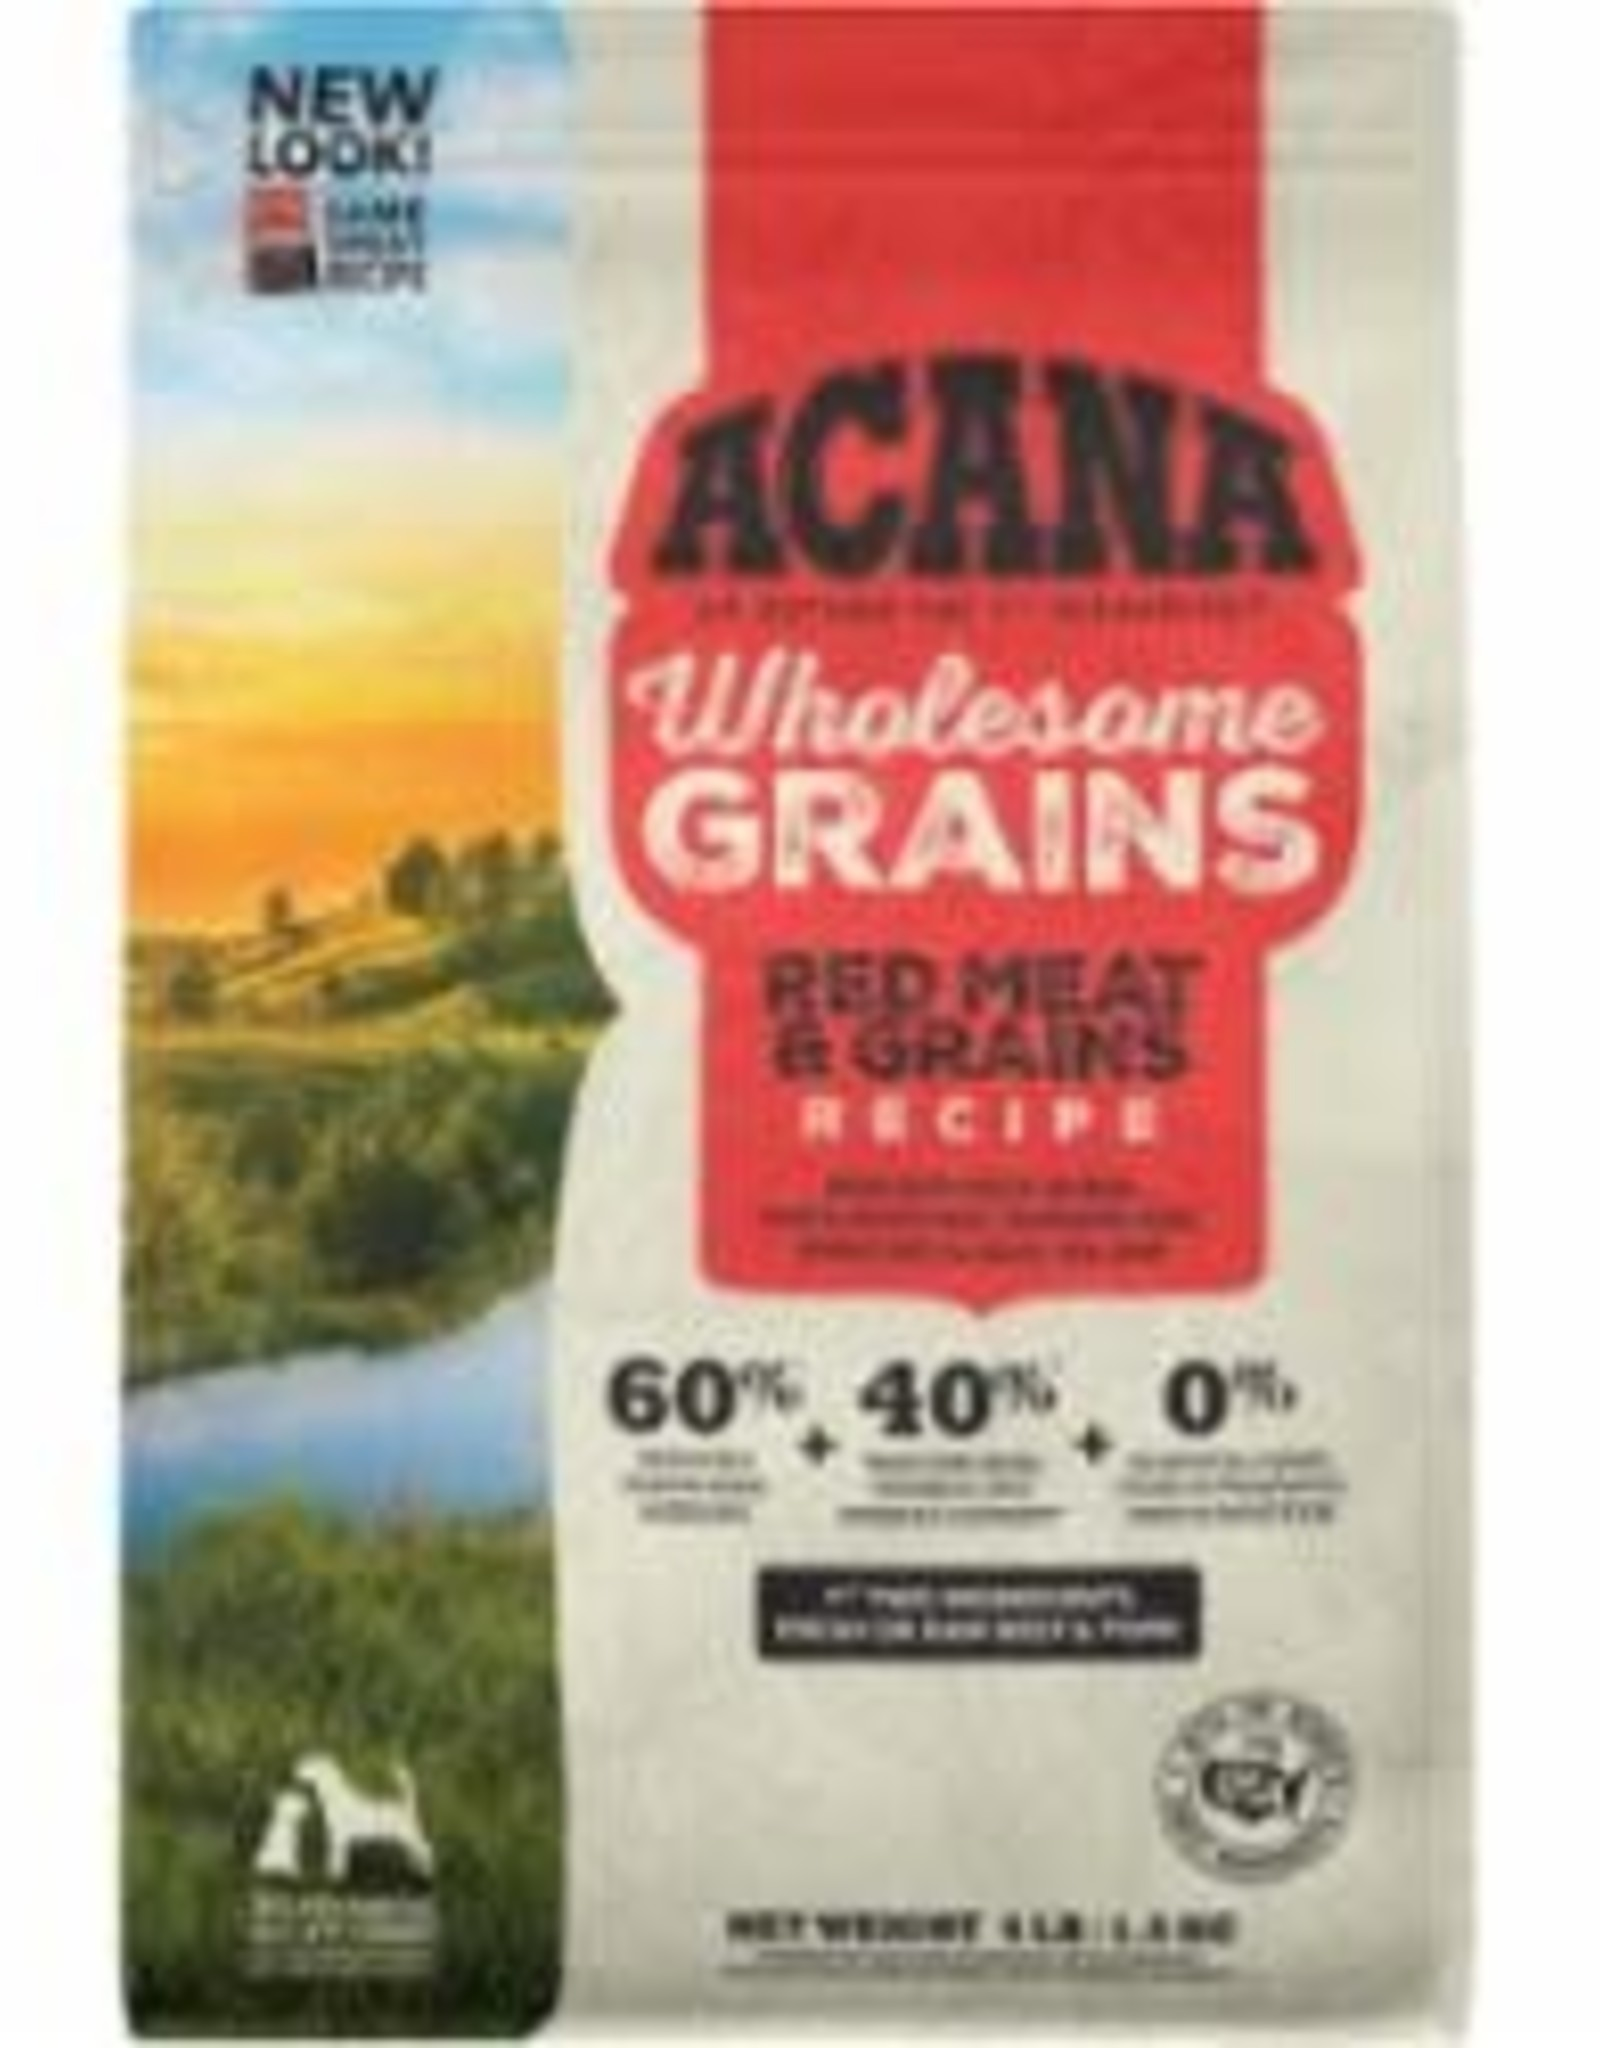 Acana ACANA DOG WHOLESOME GRAINS RED MEAT 4LB